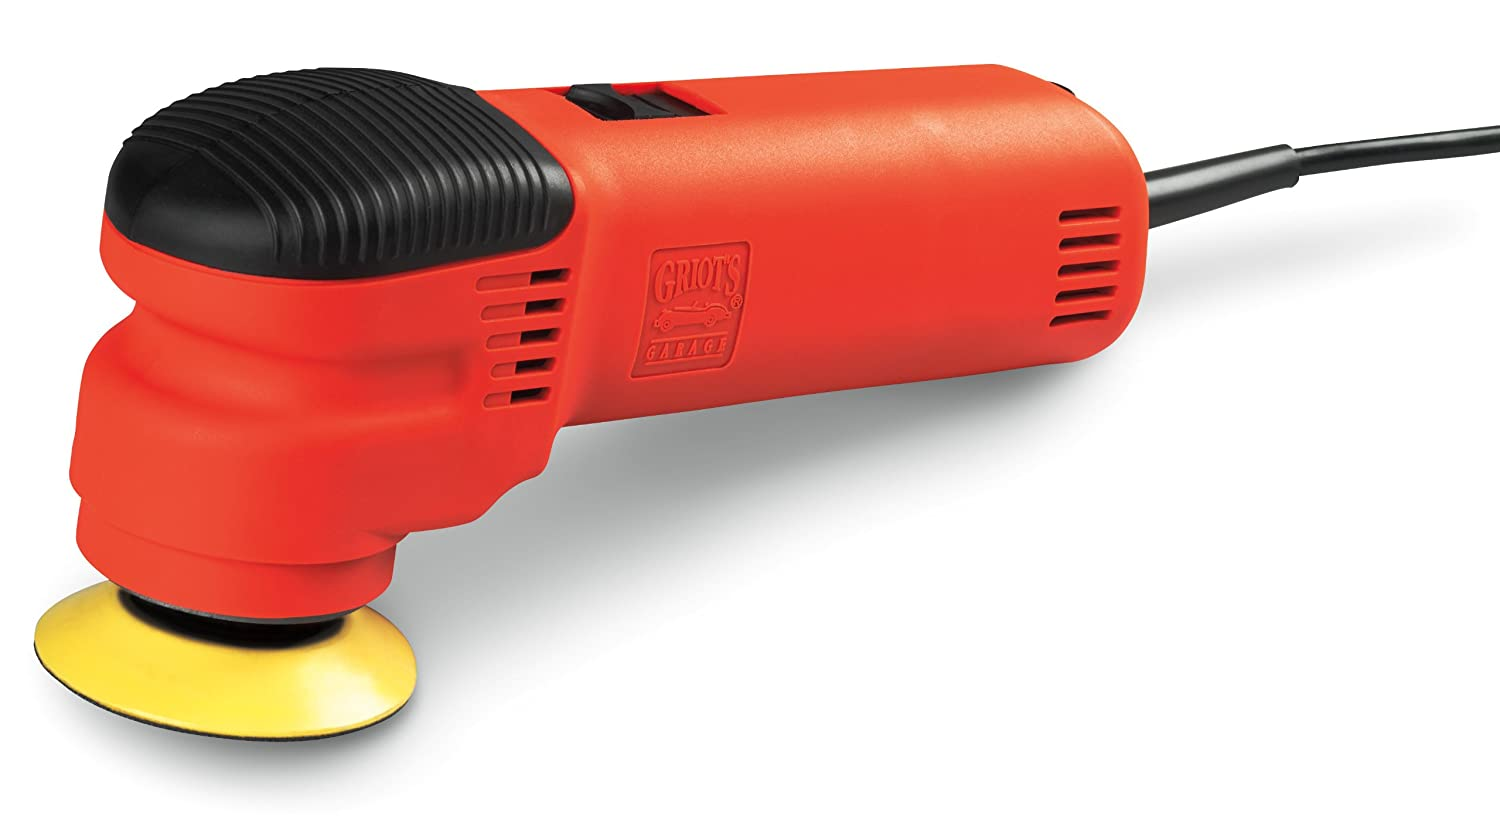 Griot's Garage 10739STDCRD 3' Dual Action Random Orbital Polisher with 10' Cord